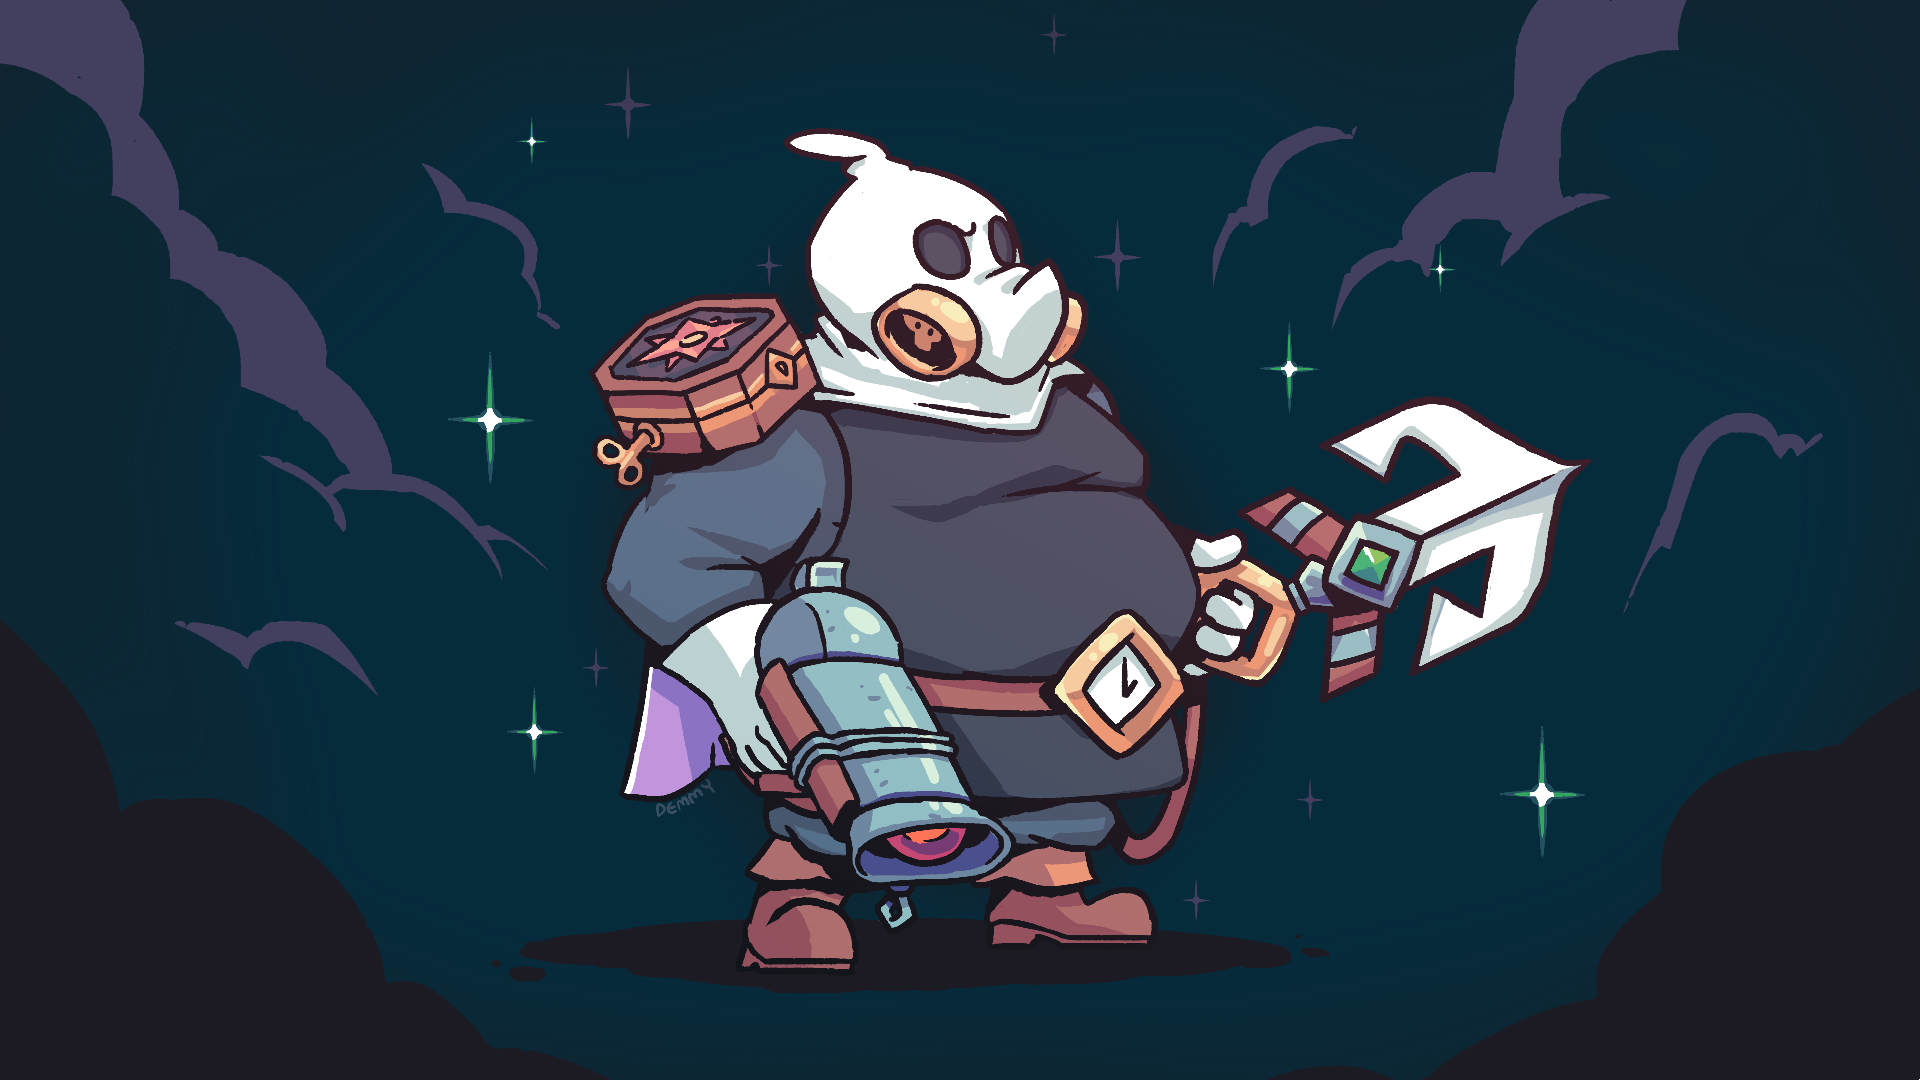 Roadhog cosplaying as Captain Flinthook